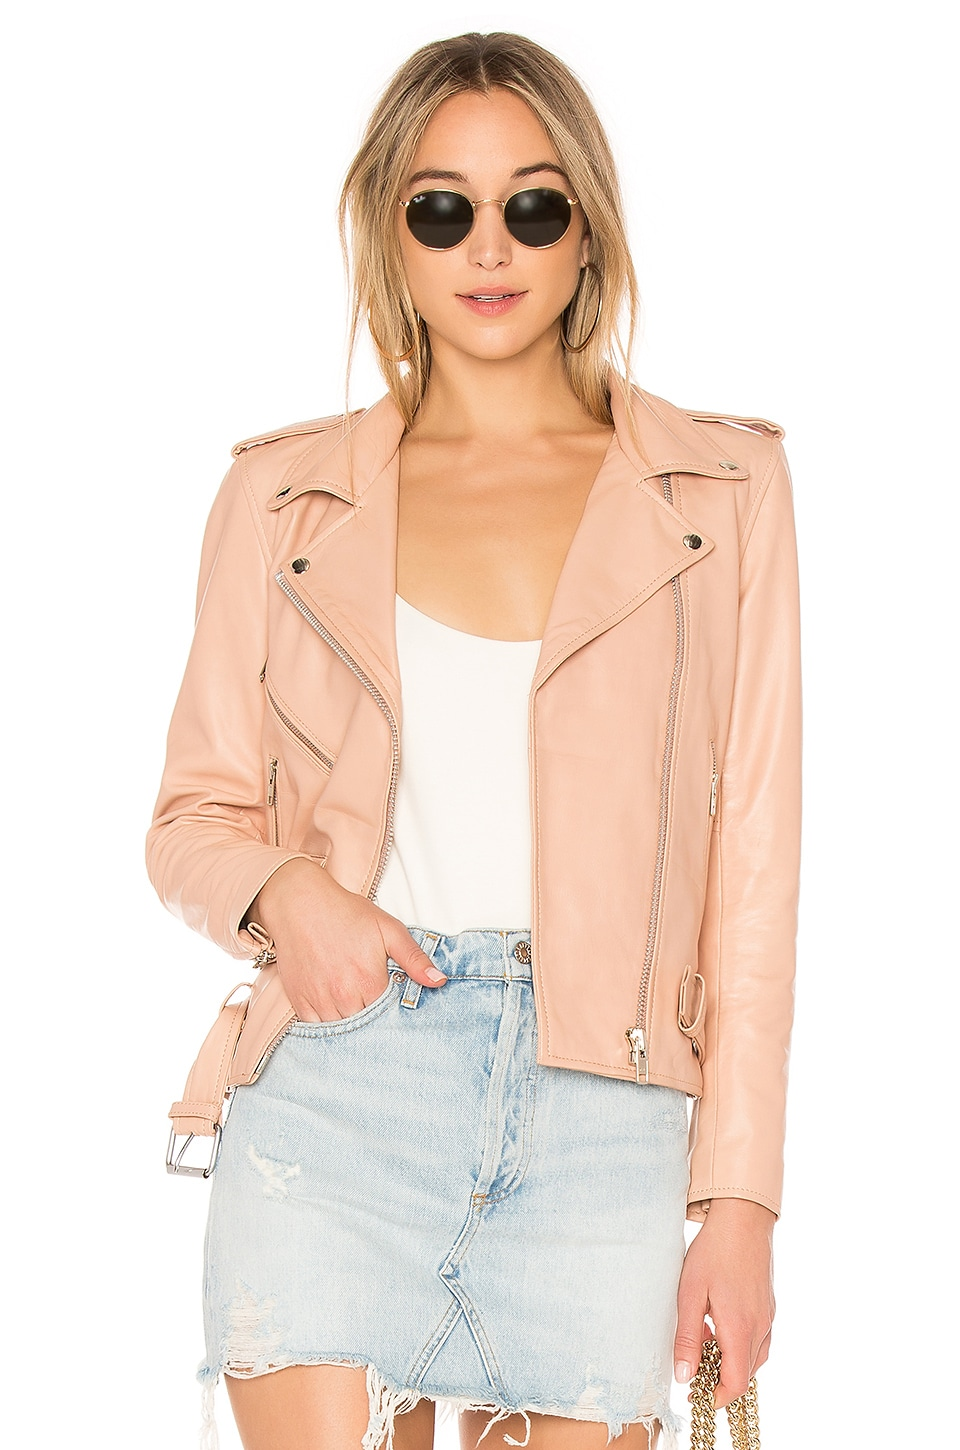 UNDERSTATED LEATHER X Revolve Lightweight Easy Rider Jacket in Blush